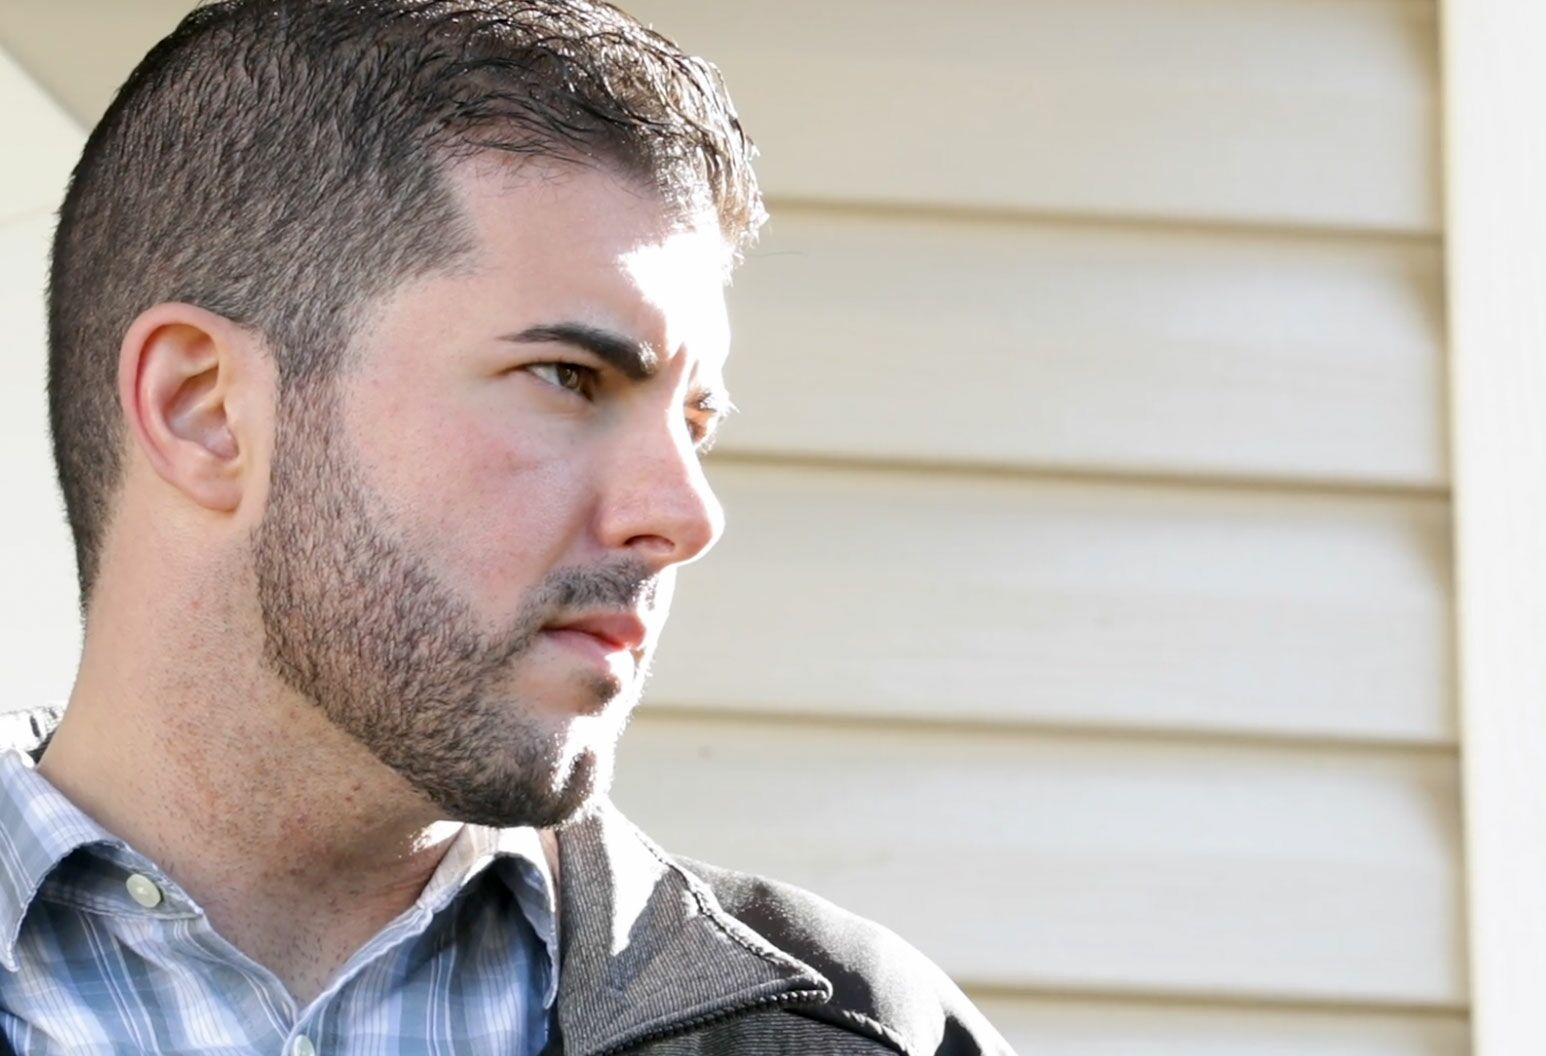 A man with short black hair and nicely trimmed beard looks off camera as the sun shines on his face.